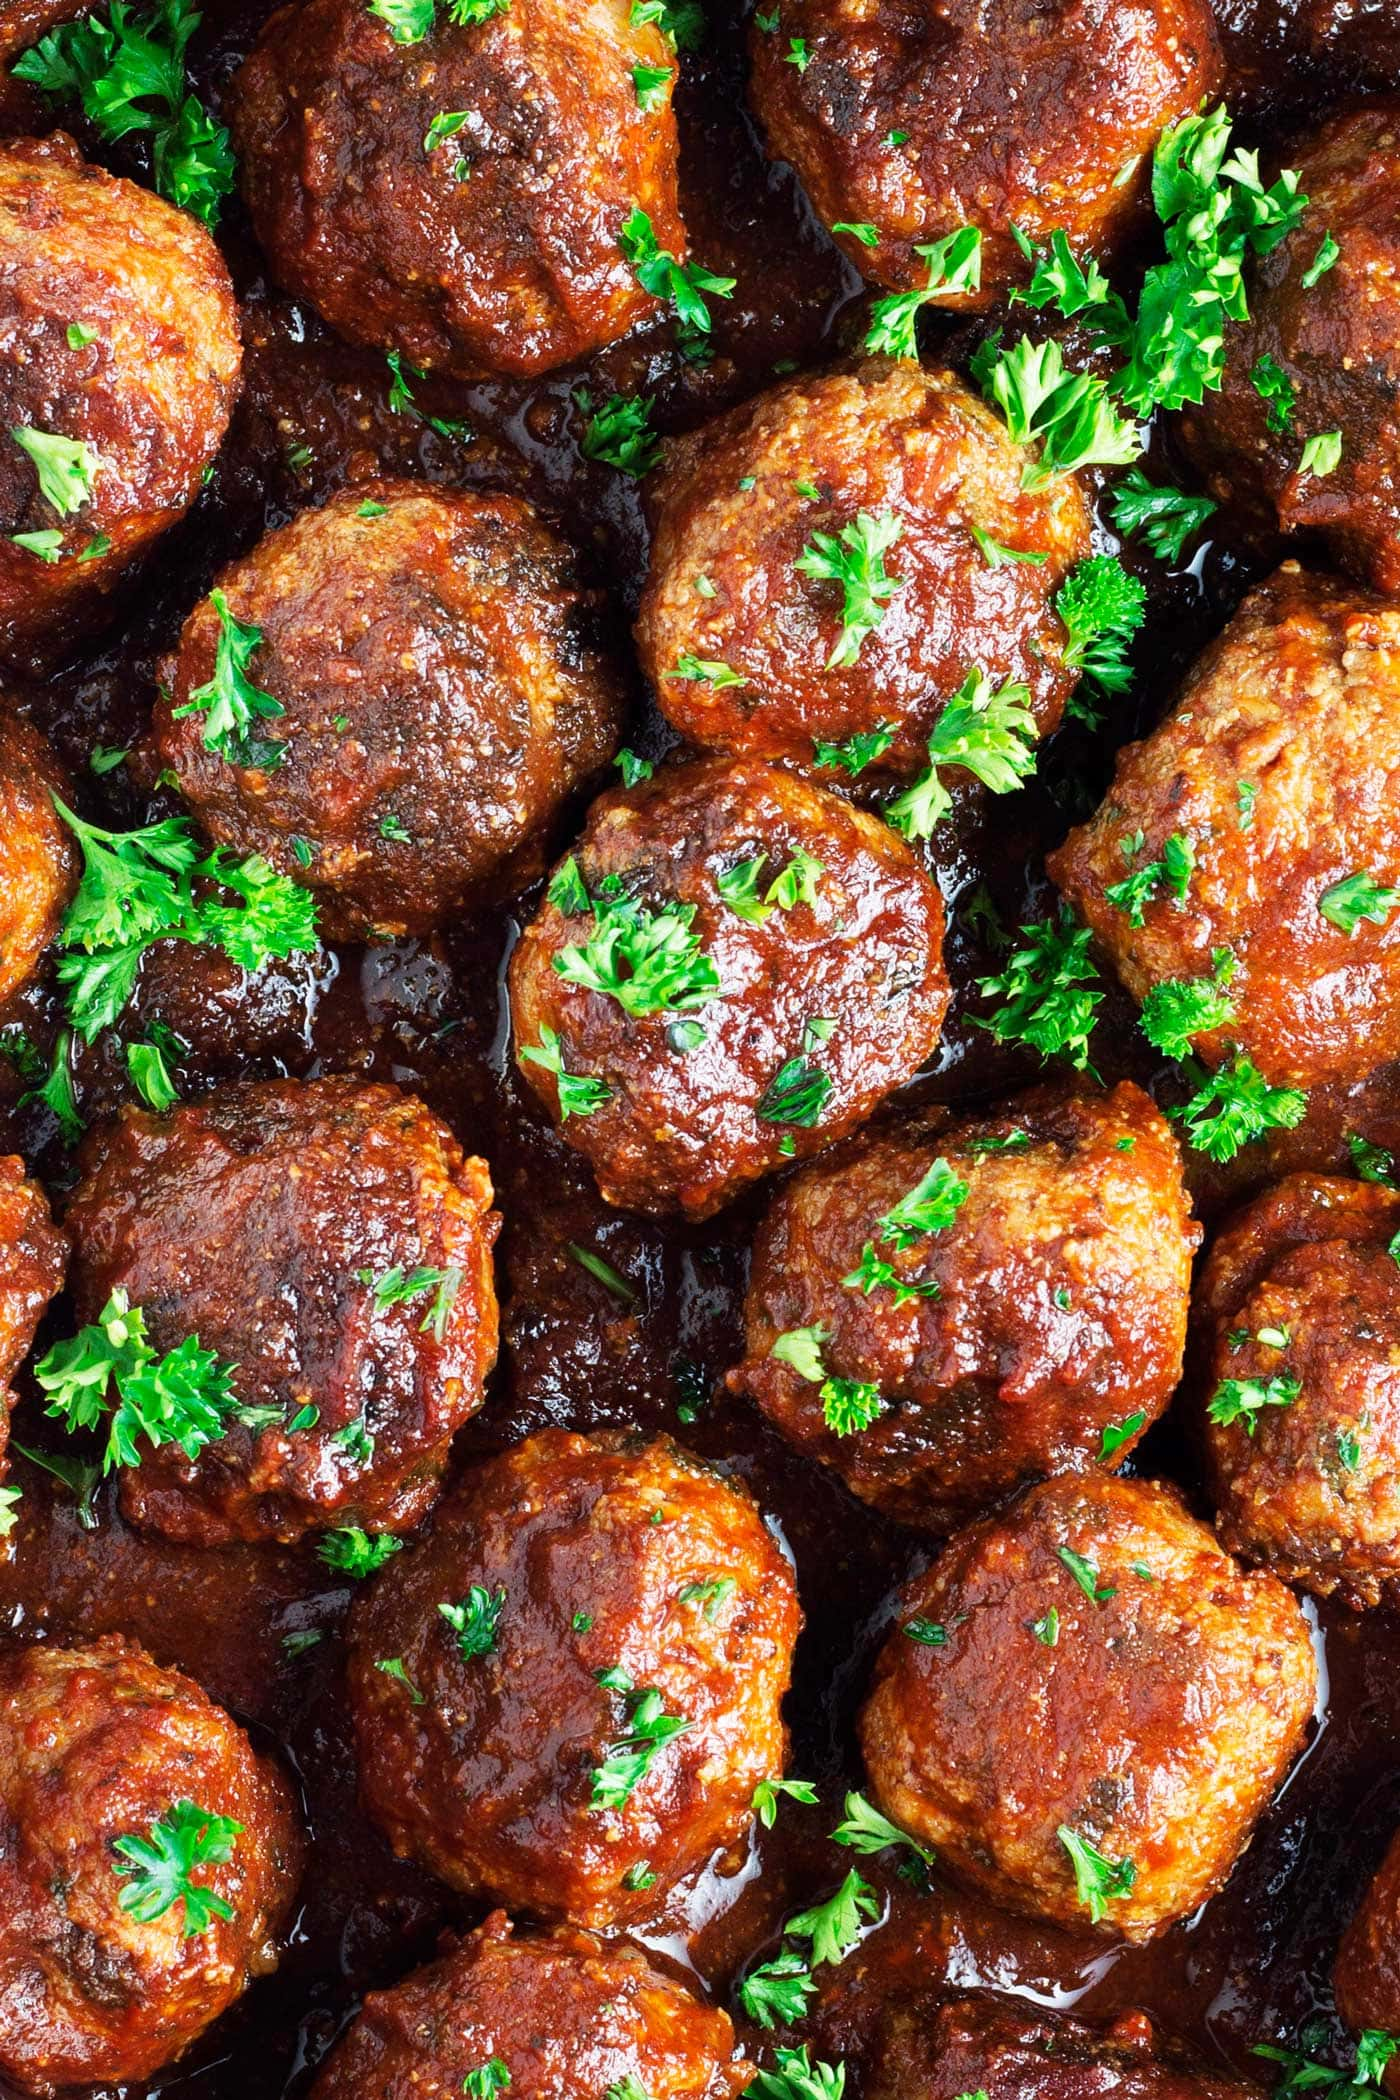 Perfect as a game day appetizer or for dinner! These bacon bourbon meatballs are easy to make and full of flavor. They are paleo, gluten free, dairy free, low carb, and can be made keto!